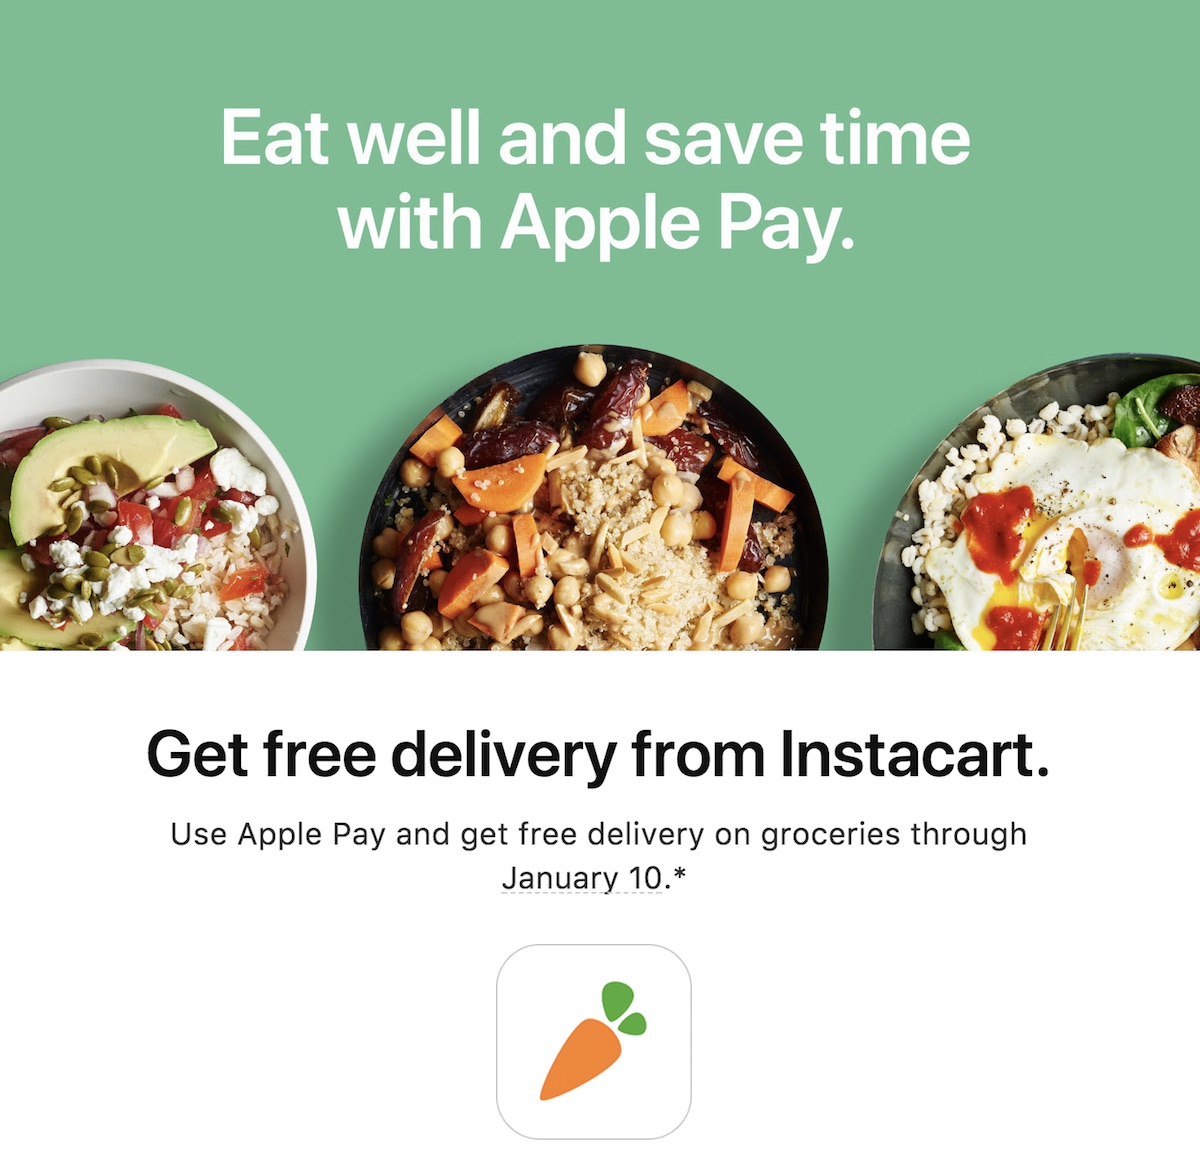 Apple Pay Promo Offers Free Delivery From Instacart Through